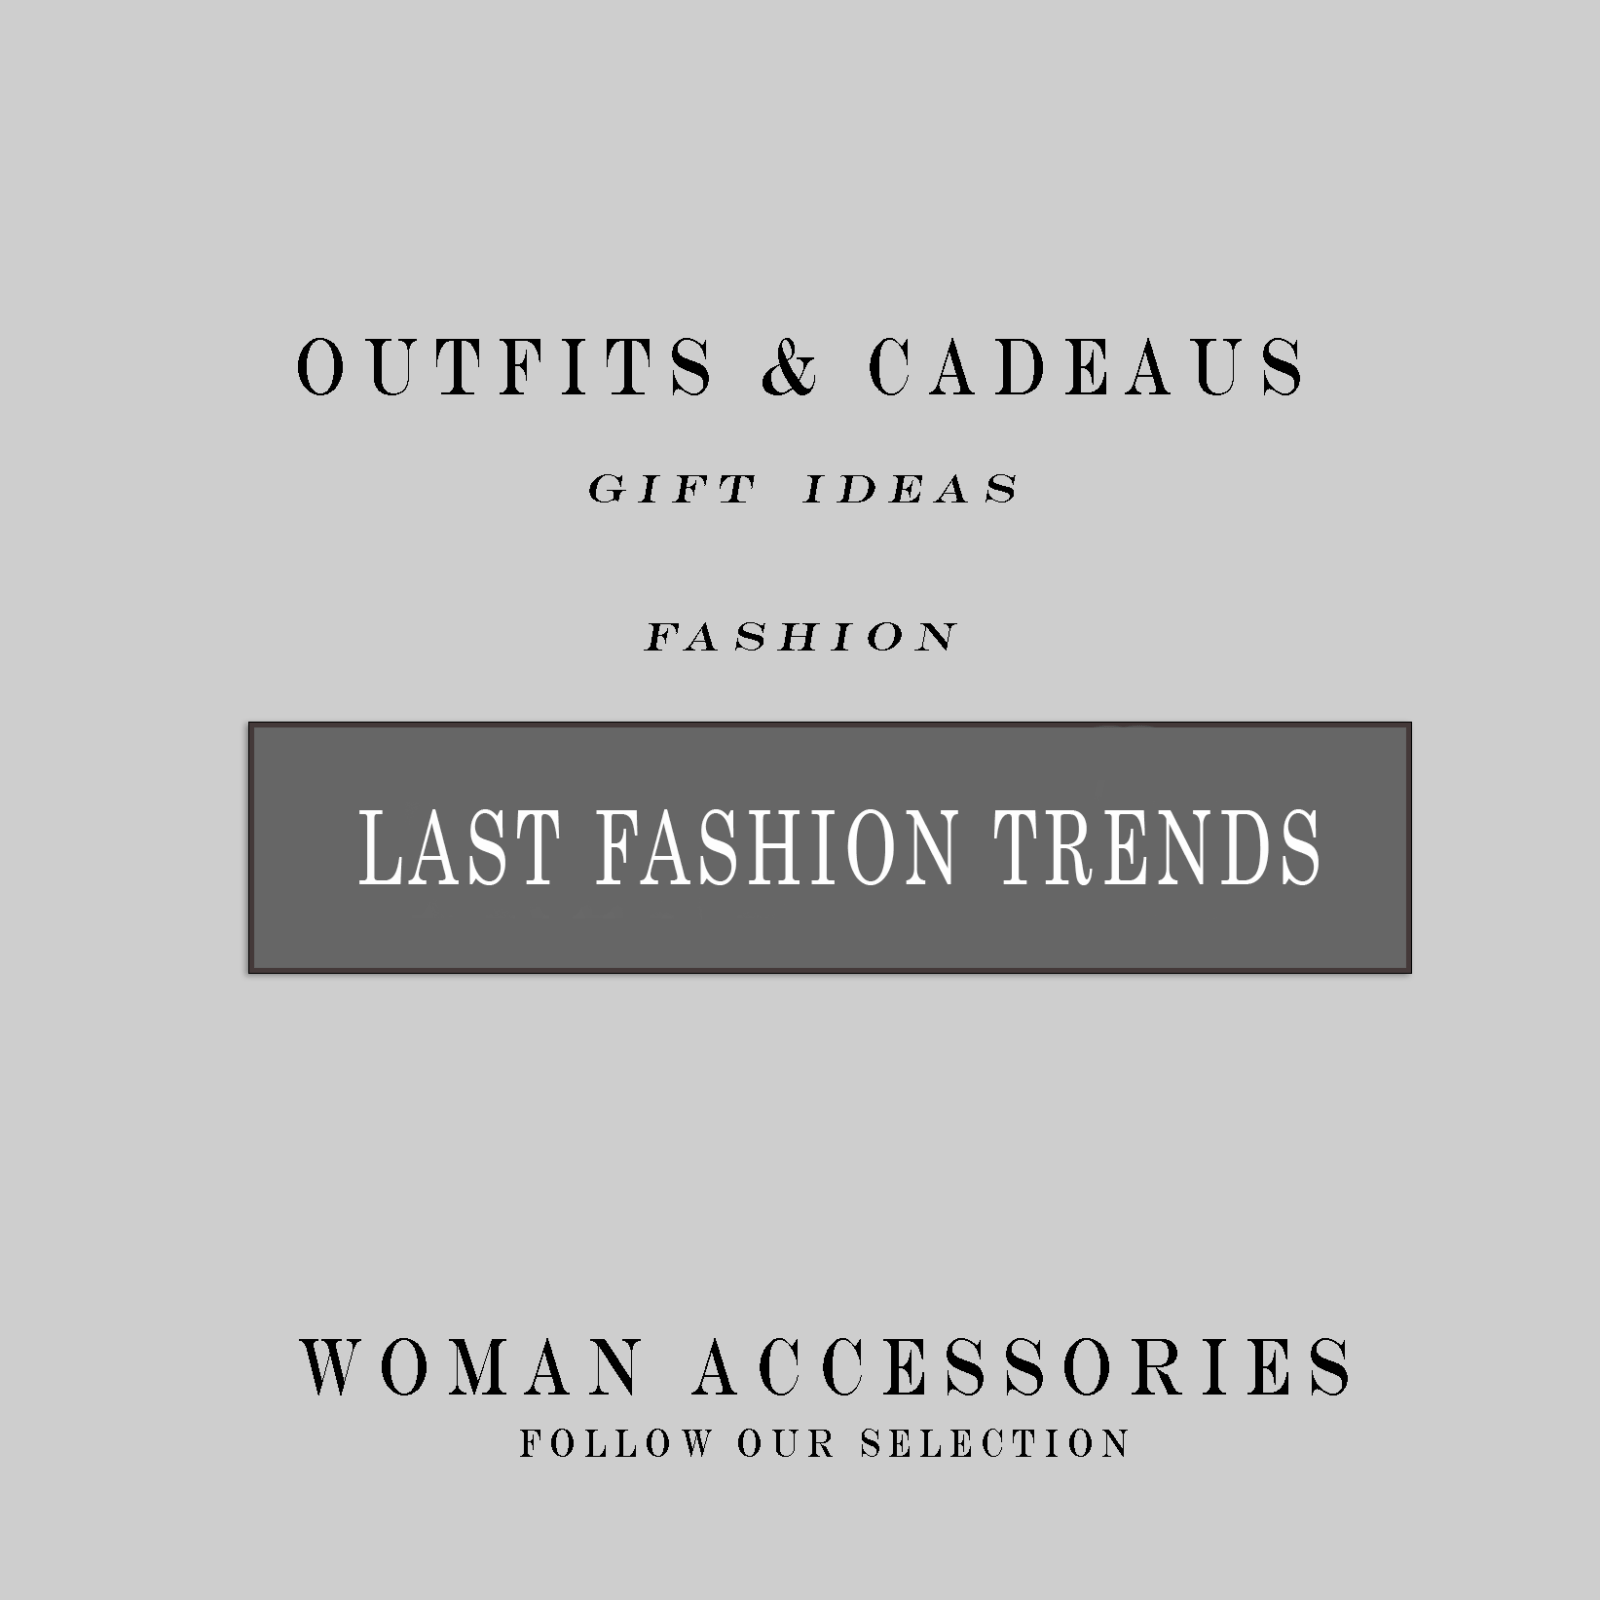 last fashion trends by Axelles Fashion